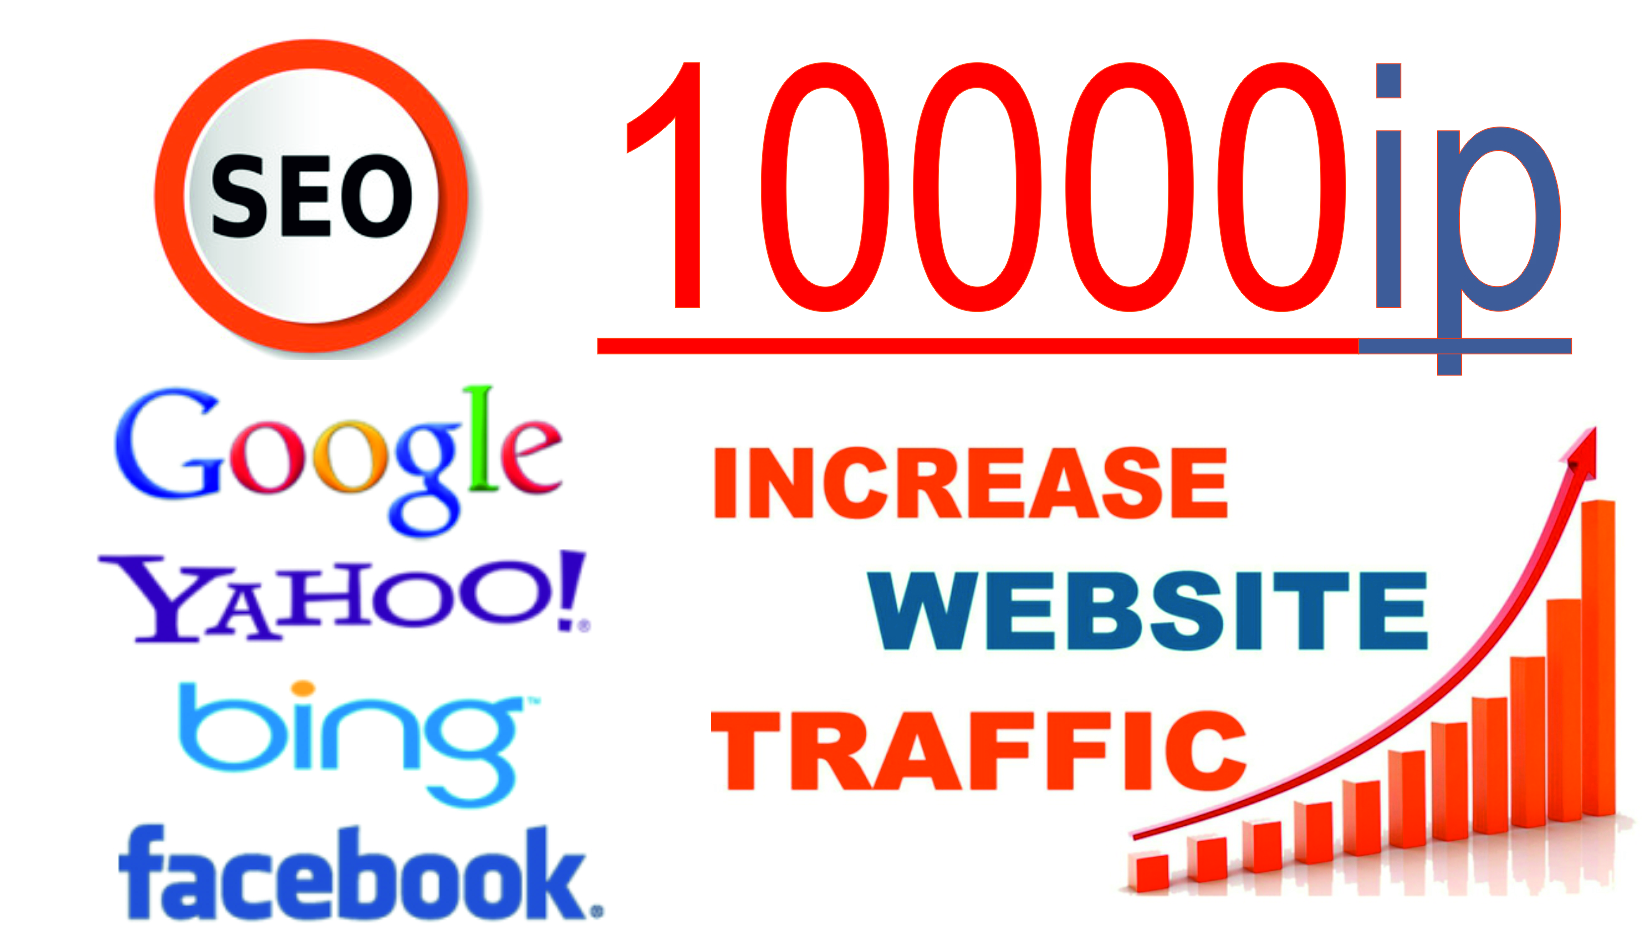 Traffic the site from 1 to 10000 ip visitors per day from any region.